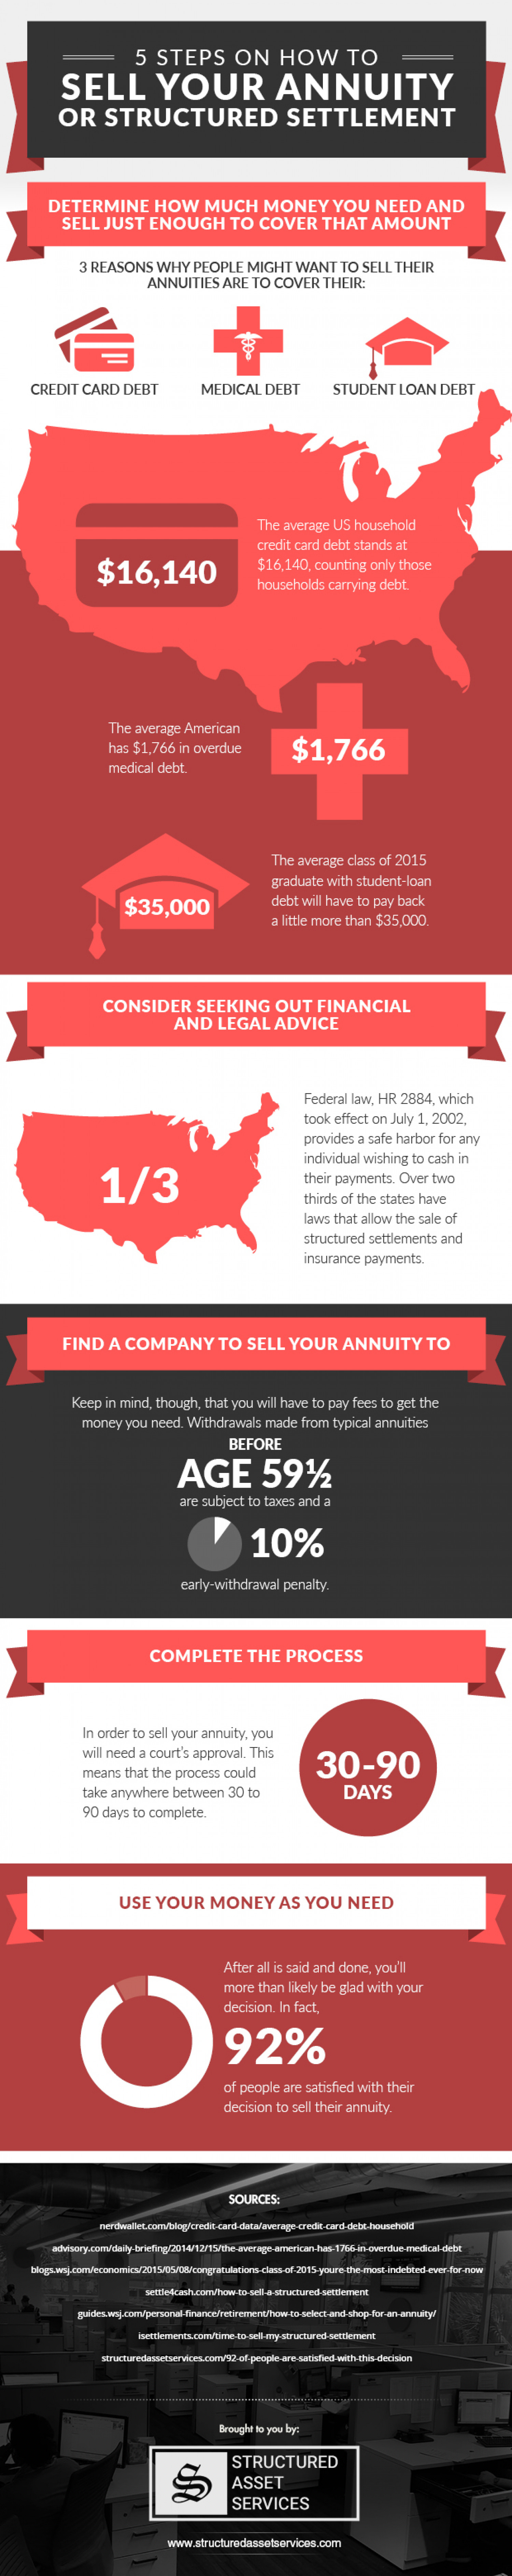 5 Steps On How To Sell Your Annuity Or Structured Settlement Infographic